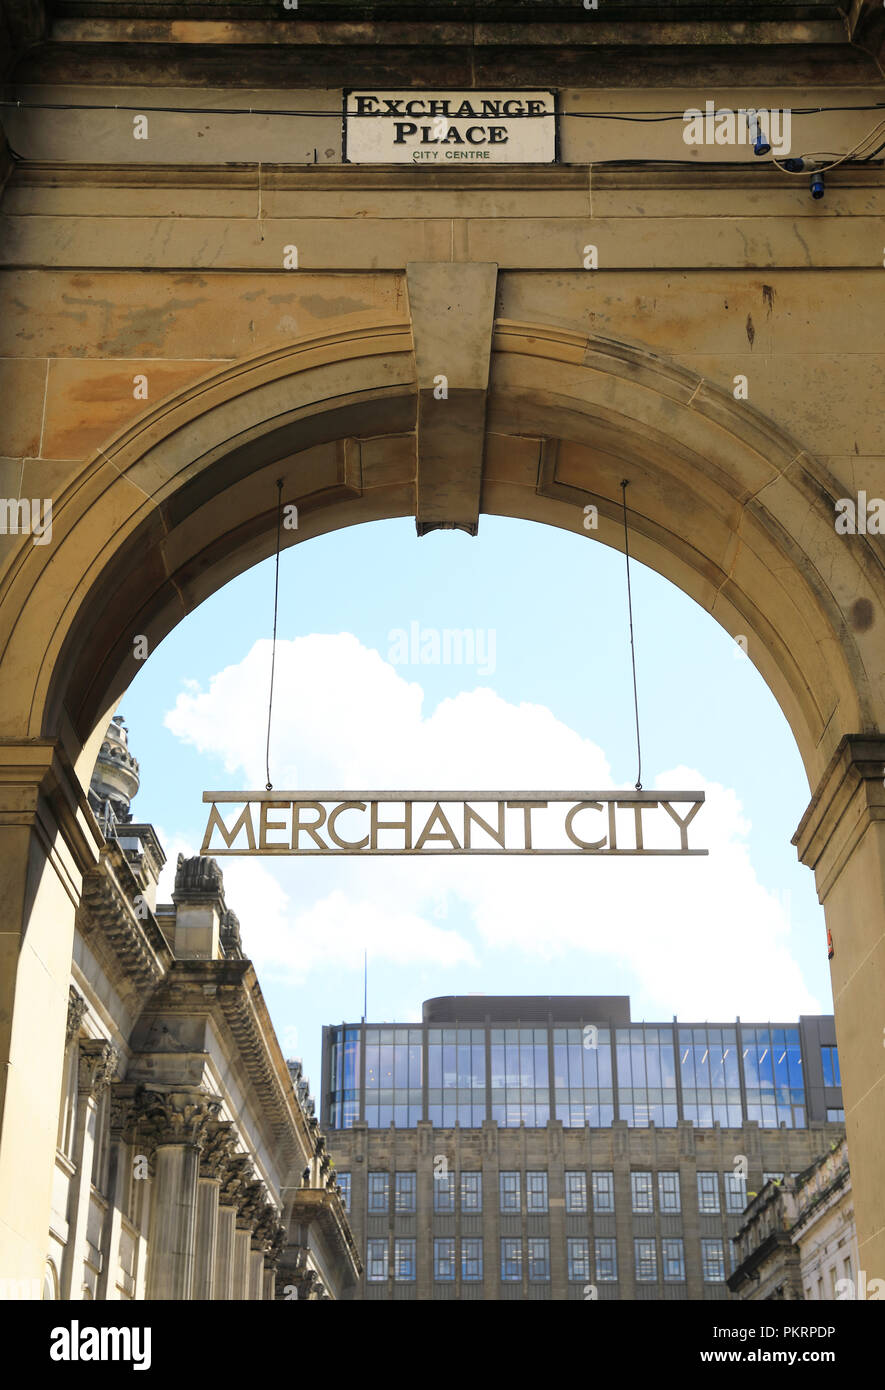 Exchange Place in Merchant City, in Glasgow, in Scotland, UK - Stock Image